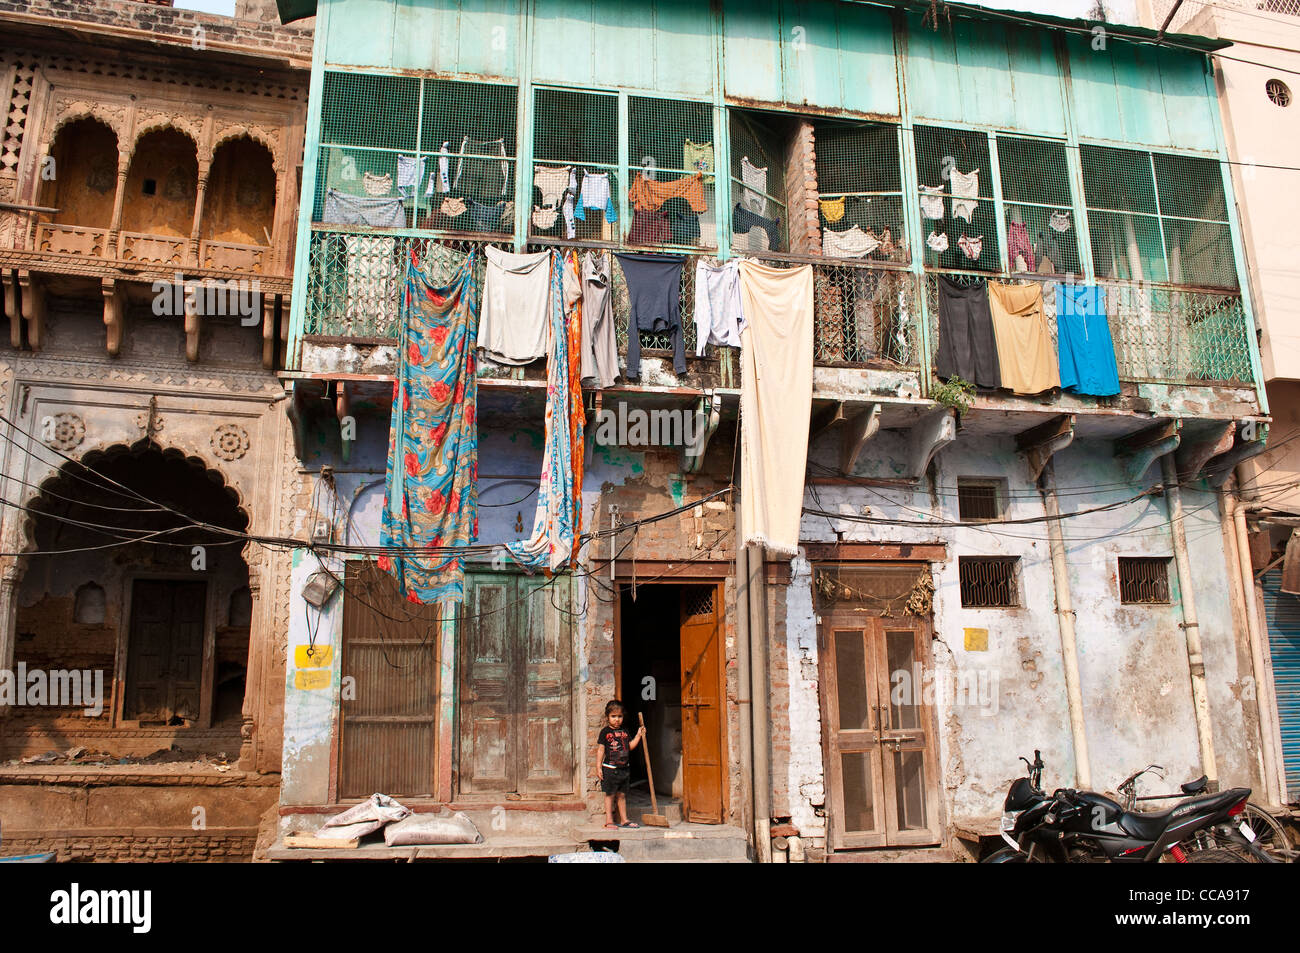 Little girl with a broom in front of a house with laundry drying, Vrindavan, Uttar Pradesh, India - Stock Image